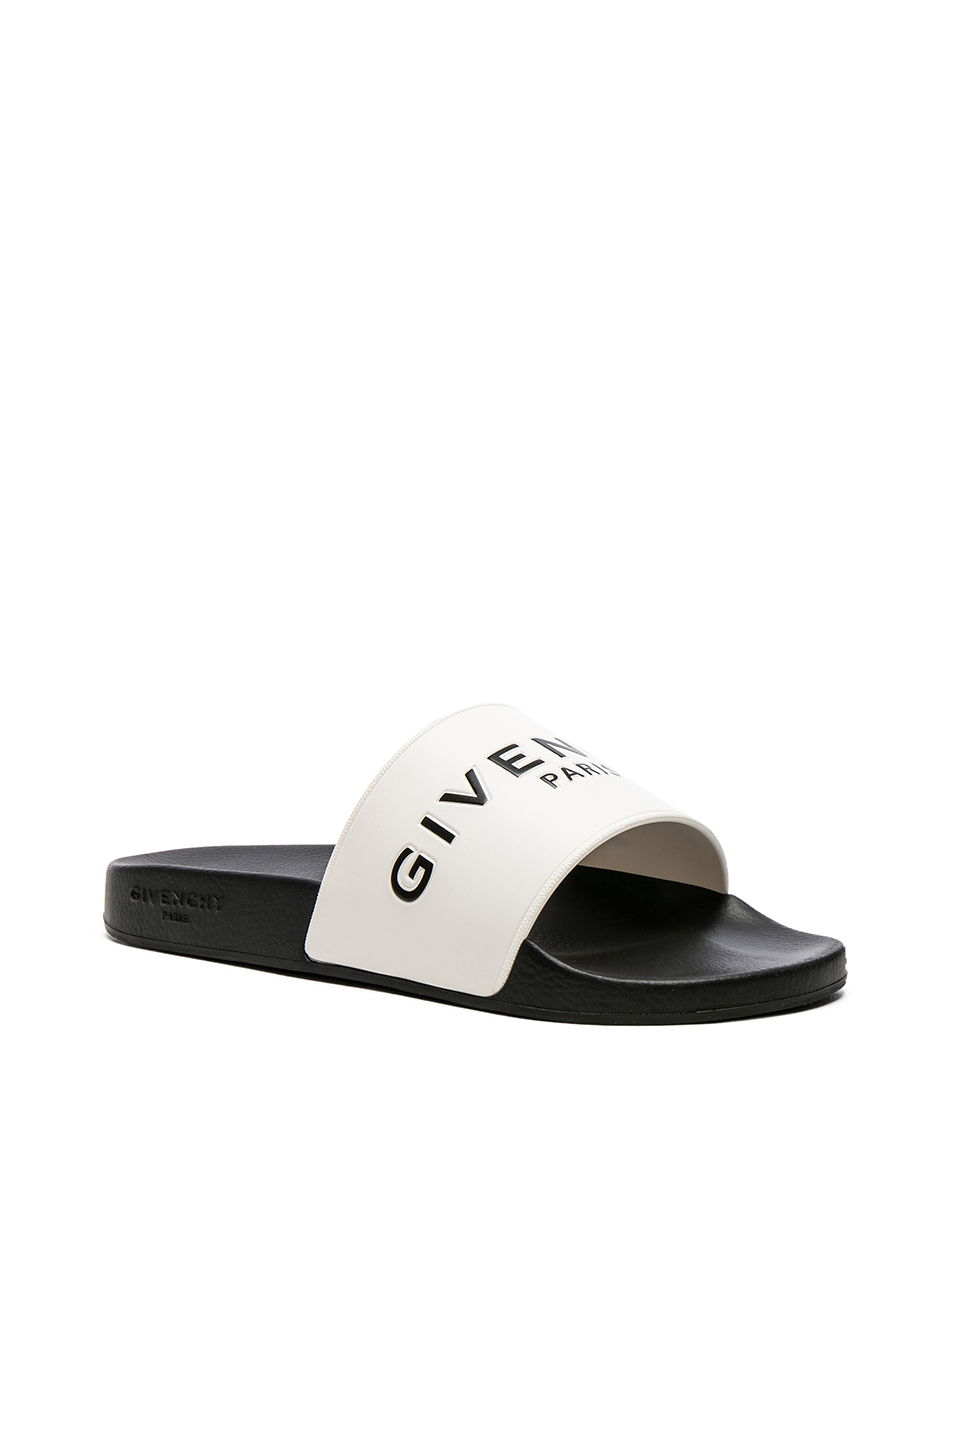 Givenchy Slide Sandals in Black,White